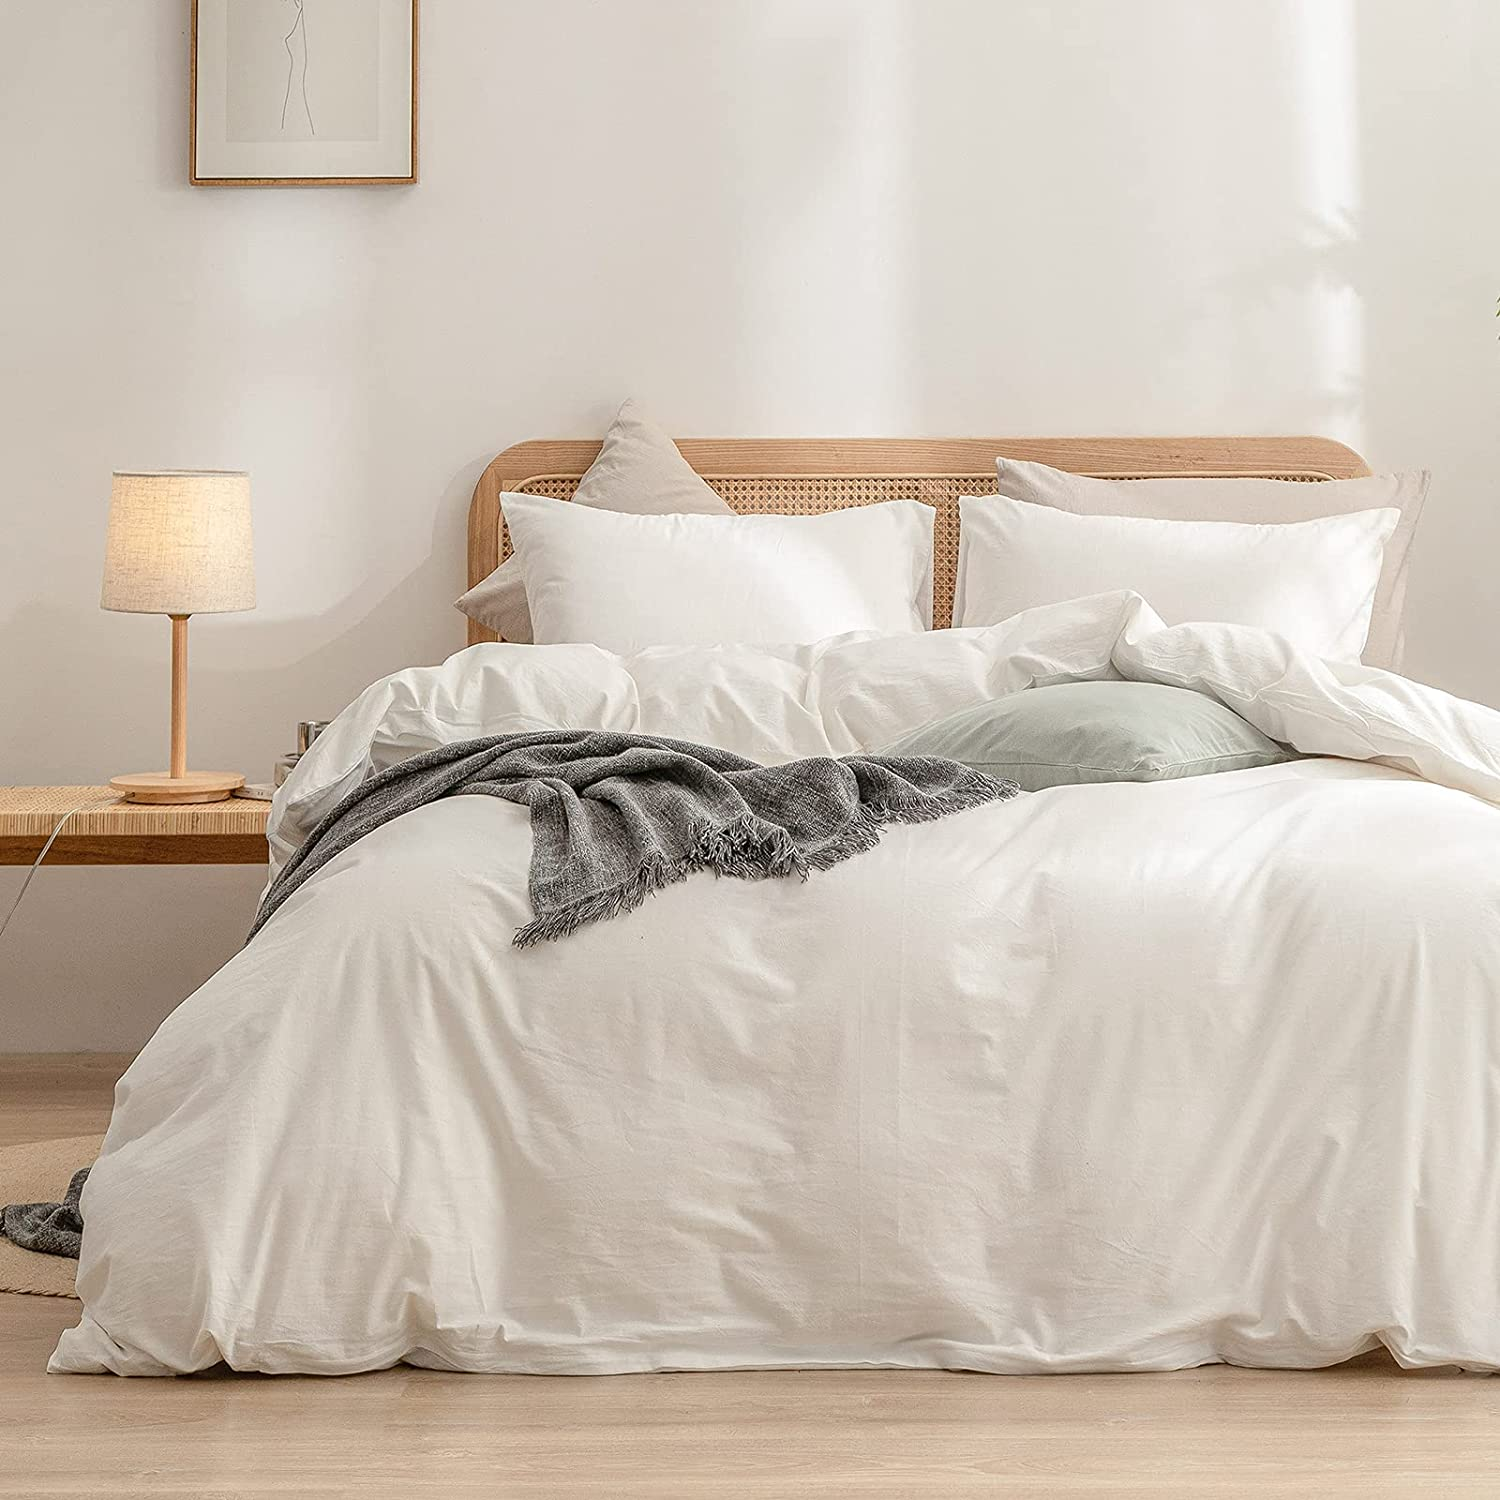 BESTOUCH Duvet Cover New Reservation Orleans Mall Set 100% Washed Linen Super Feel Sof Cotton